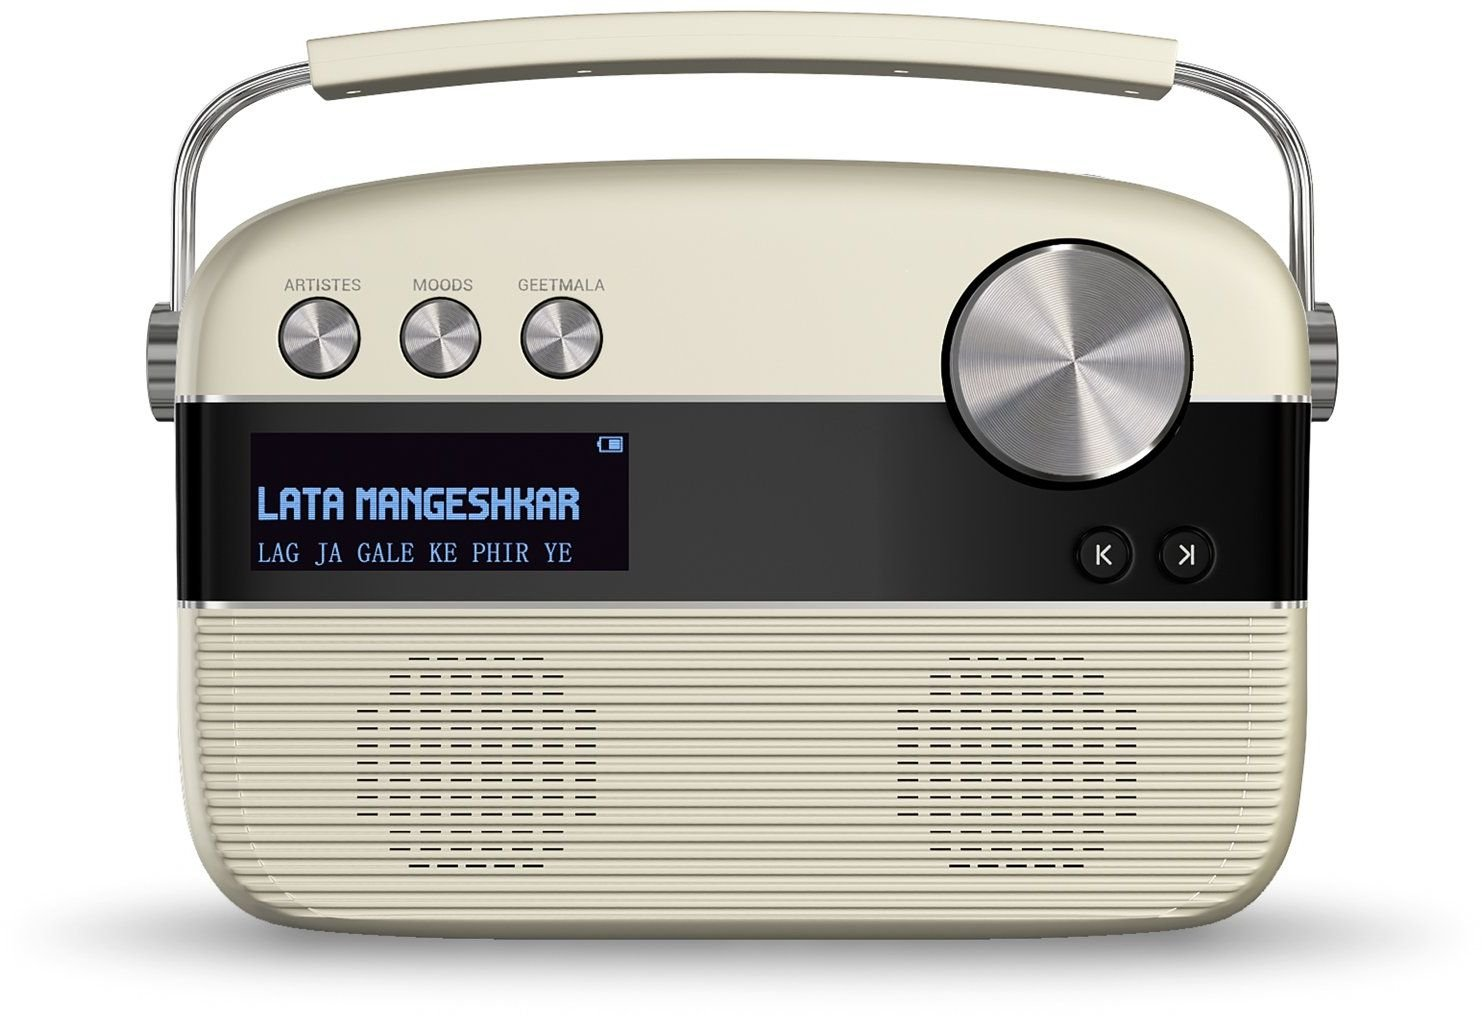 Saregama Carvaan SKU-R20008 Portable Digital Music Player (Porcelain White)  with Out Remote